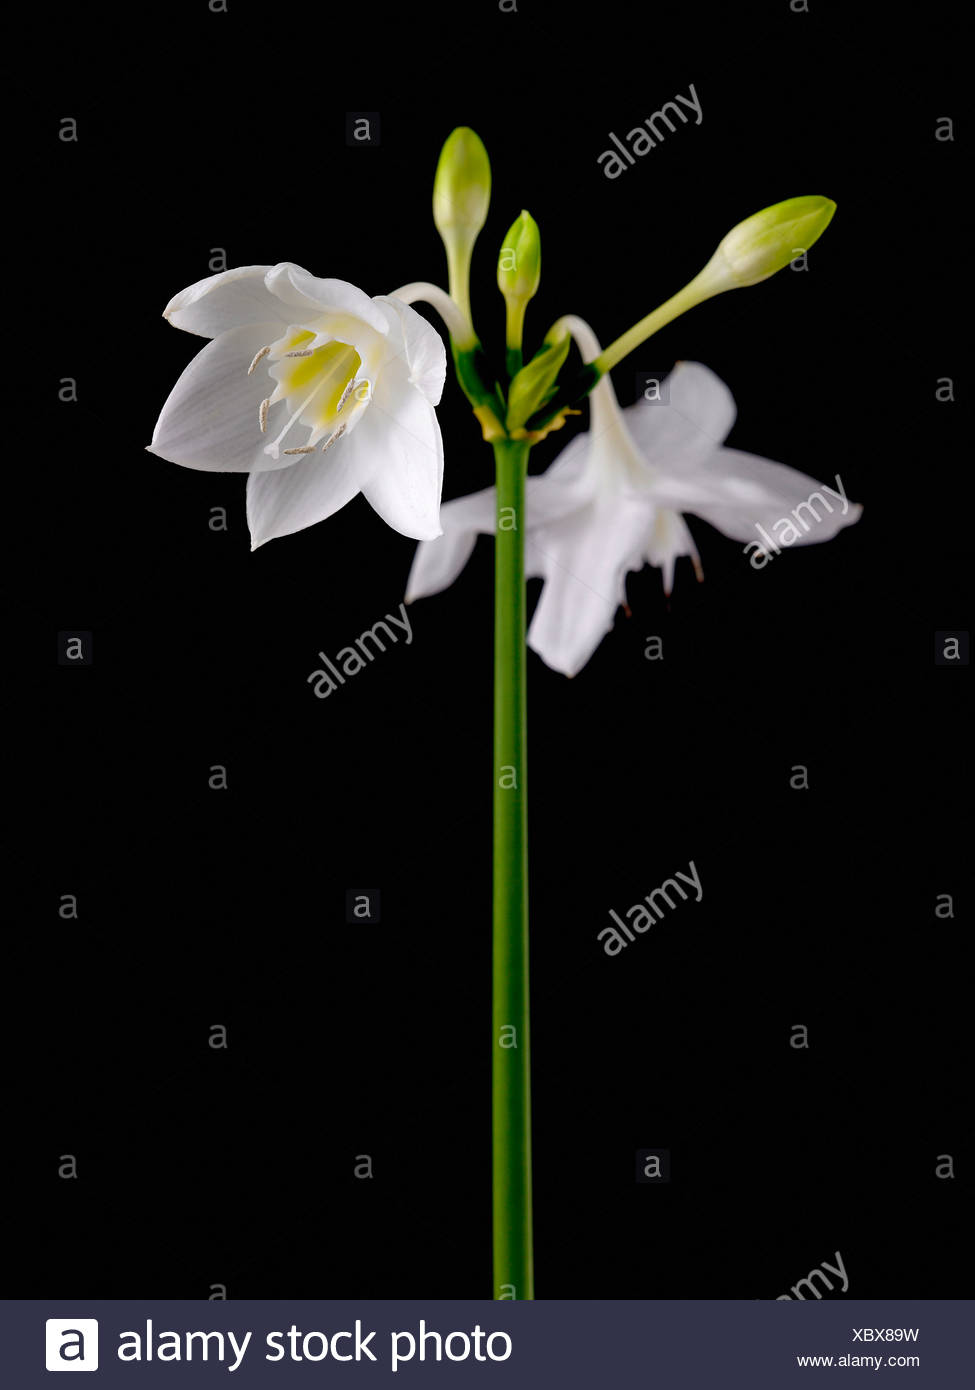 Eucharis grandiflora, Amazon lily, White, Black. - Stock Image